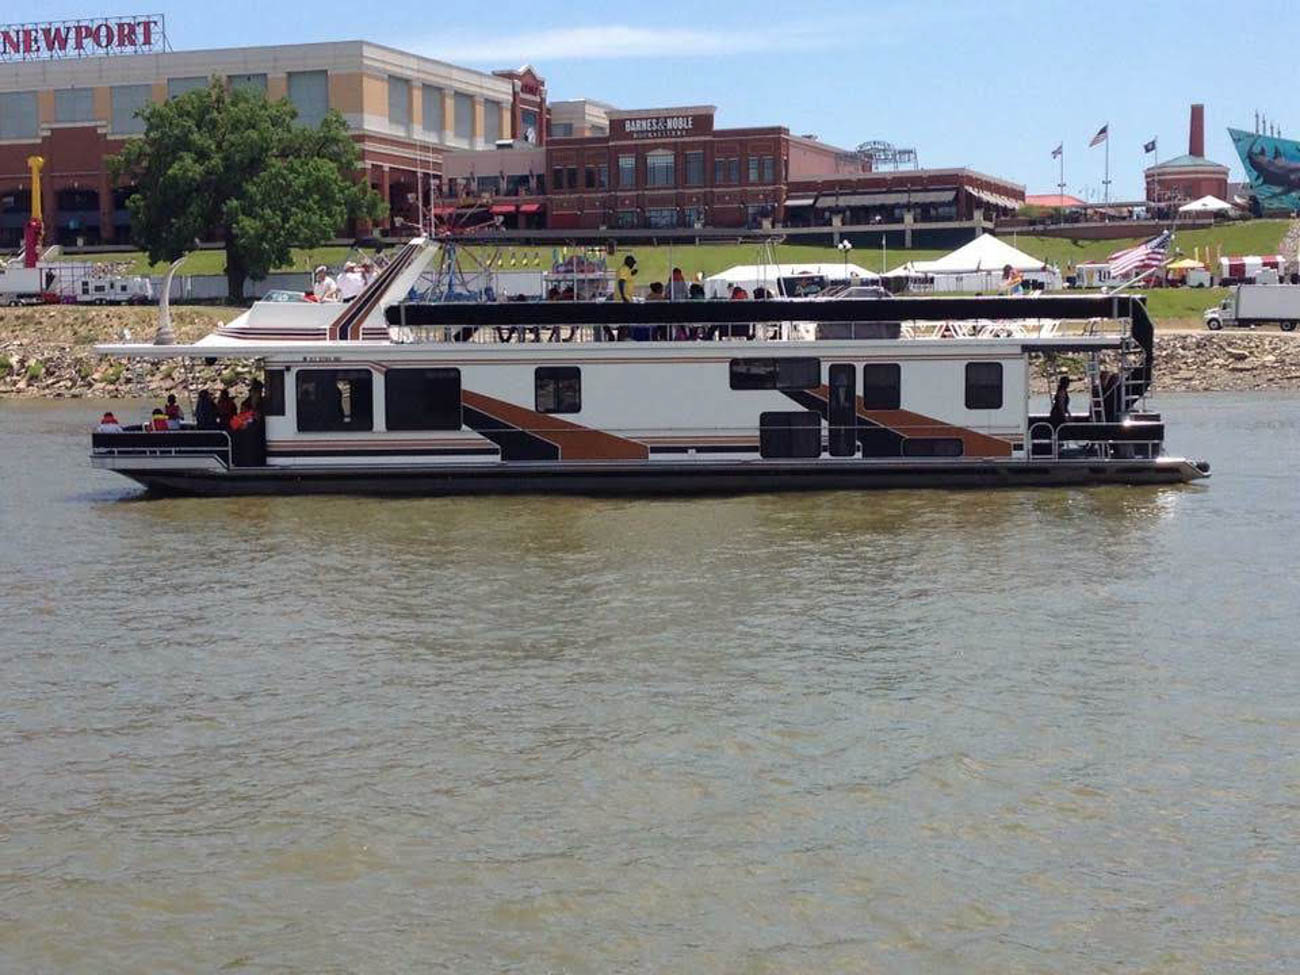 This spacious houseboat on the Ohio River sleeps up to eight people, making it the perfect place for a summer getaway with friends. The 60-foot deck offers plenty of space to grill out and catch some sun during the day and a prime location in the Manhattan Harbour—only 10 minutes from Cincinnati—serves up shimmering city views at night. The space houses 4 bedrooms and 2 baths. / Image: Chris Watkins // Published: 5.21.19